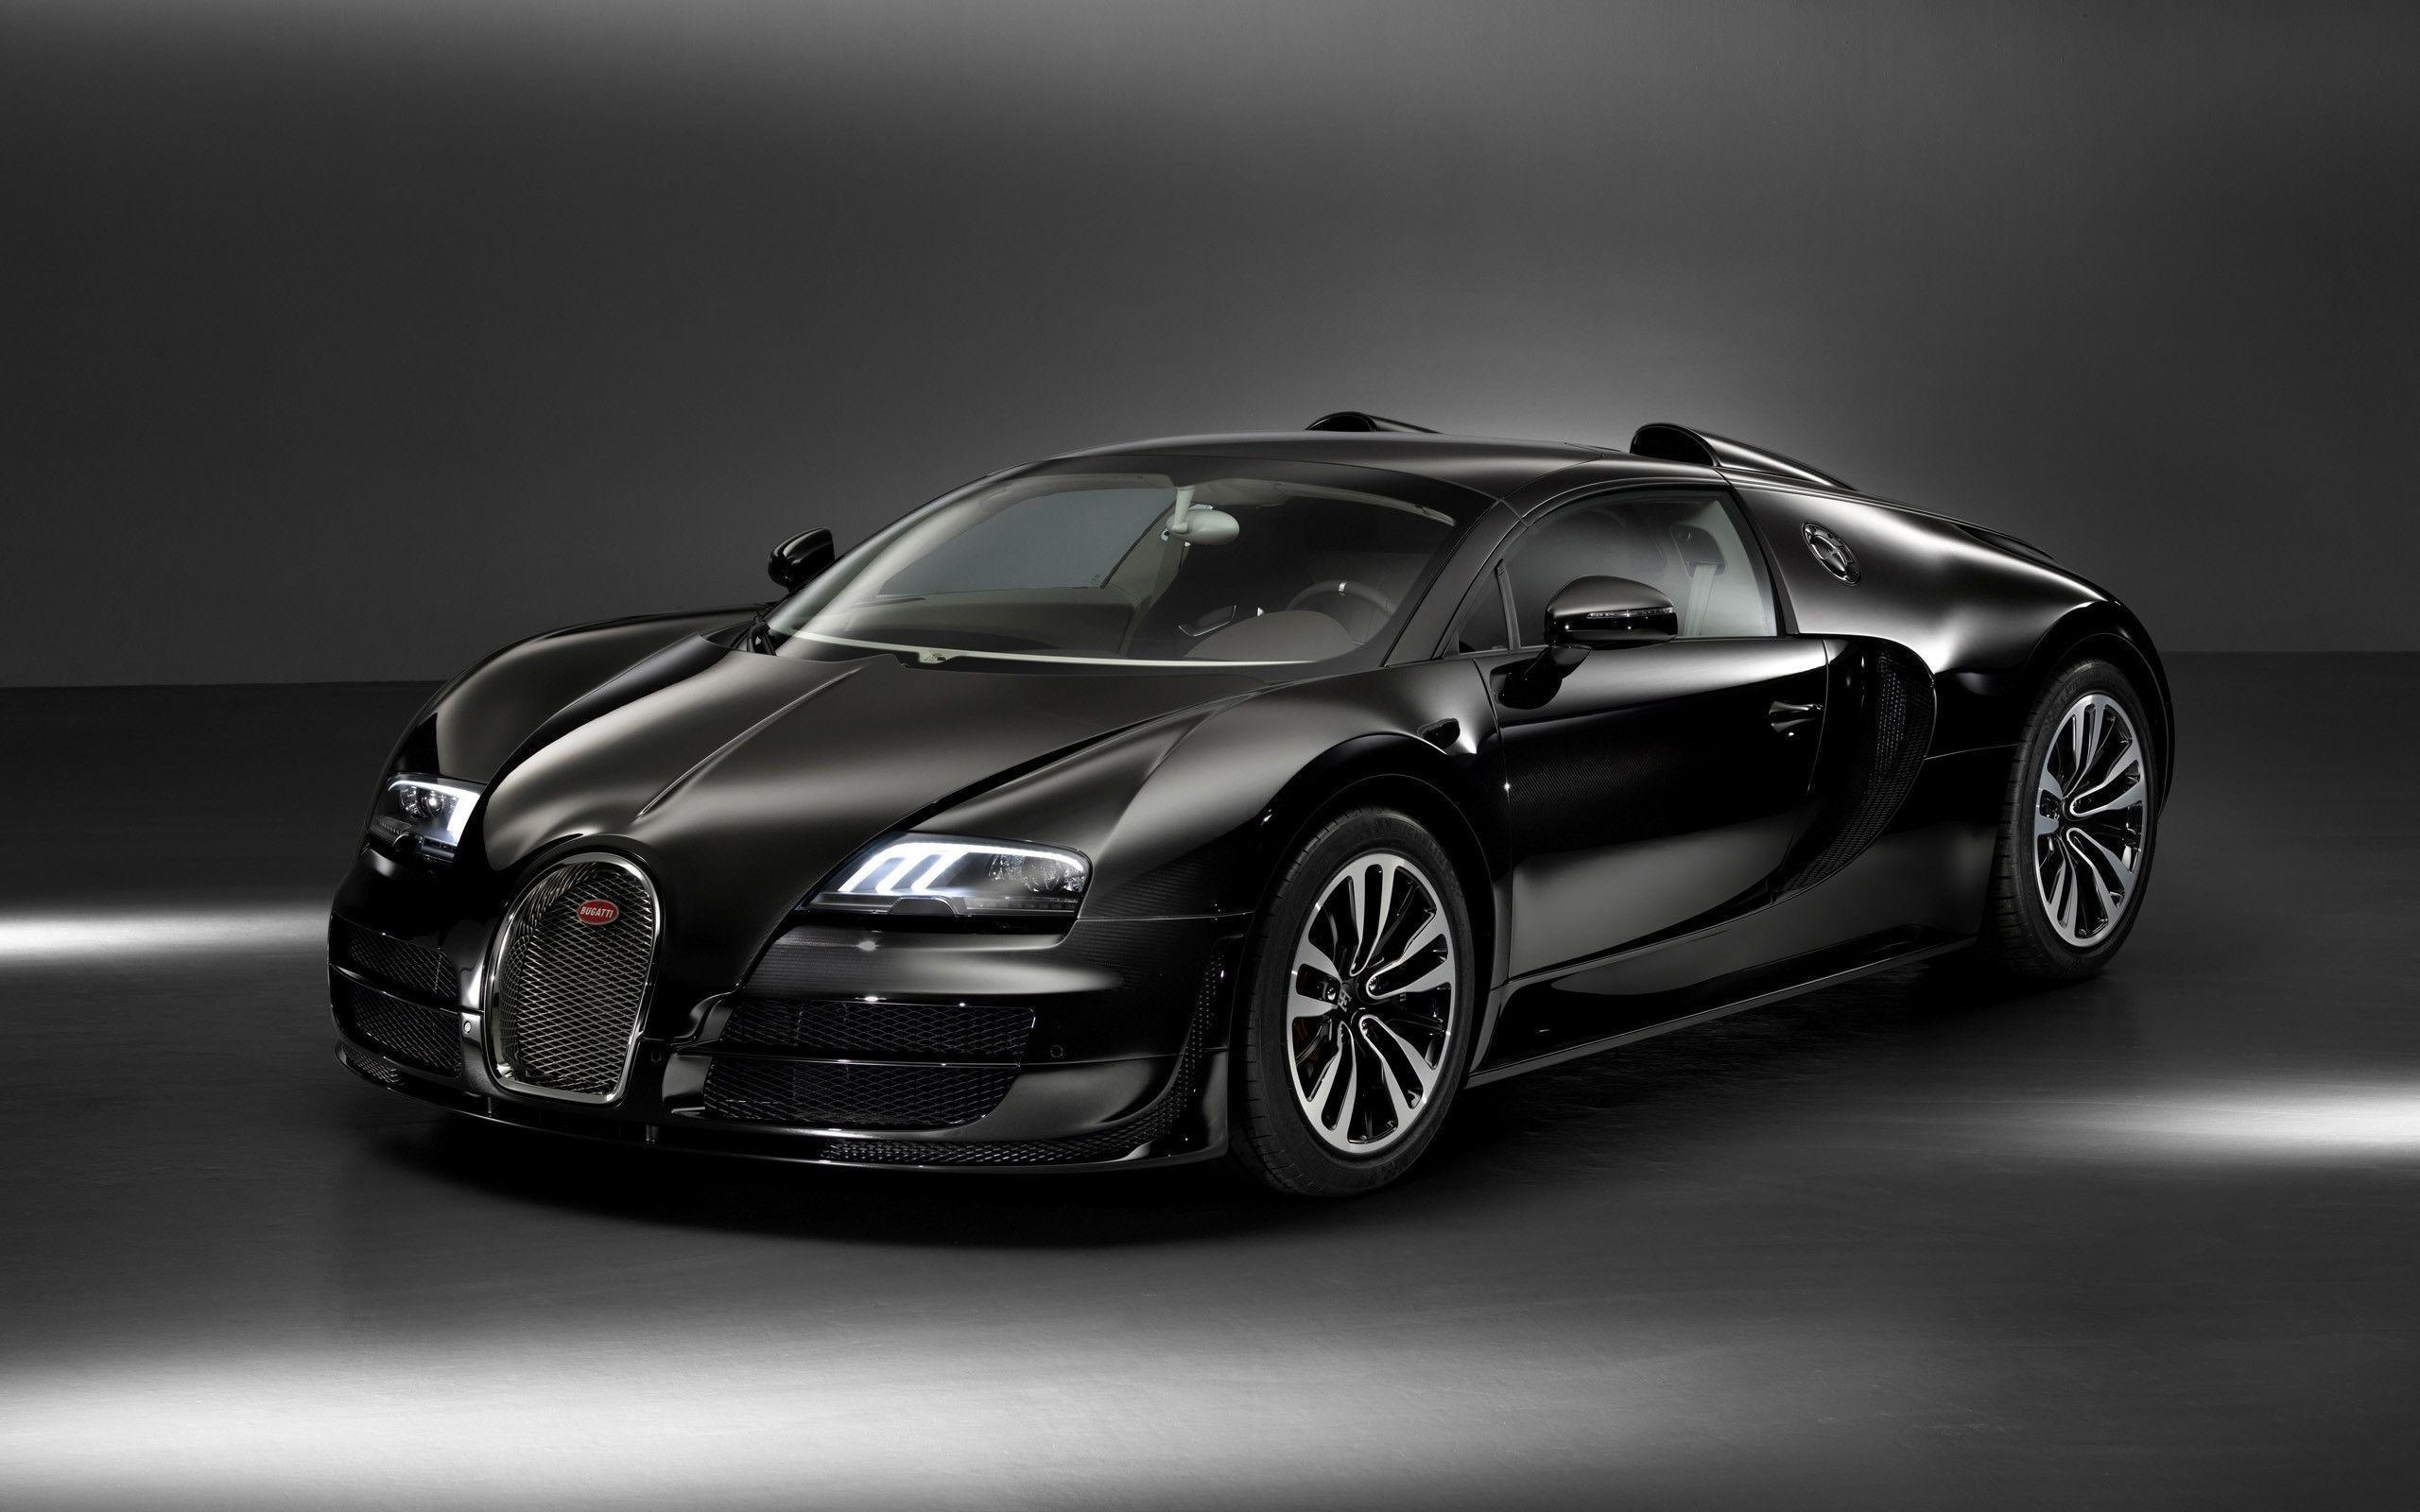 Black Bugatti Wallpapers Top Free Black Bugatti Backgrounds Wallpaperaccess